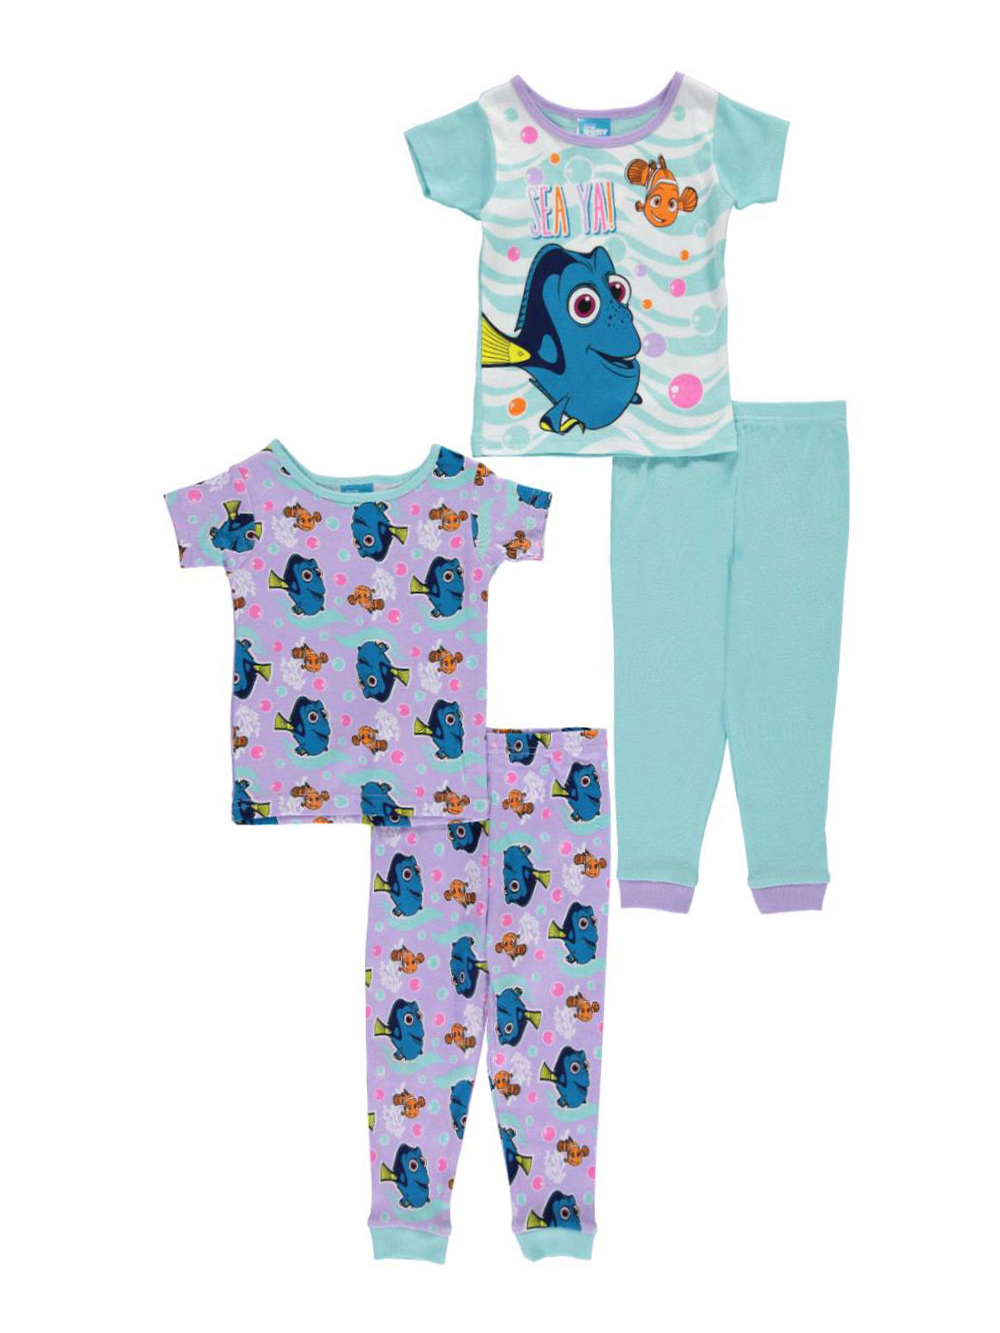 Image of Finding Dory Baby Girls Sea Ya 4Piece Pajama Set